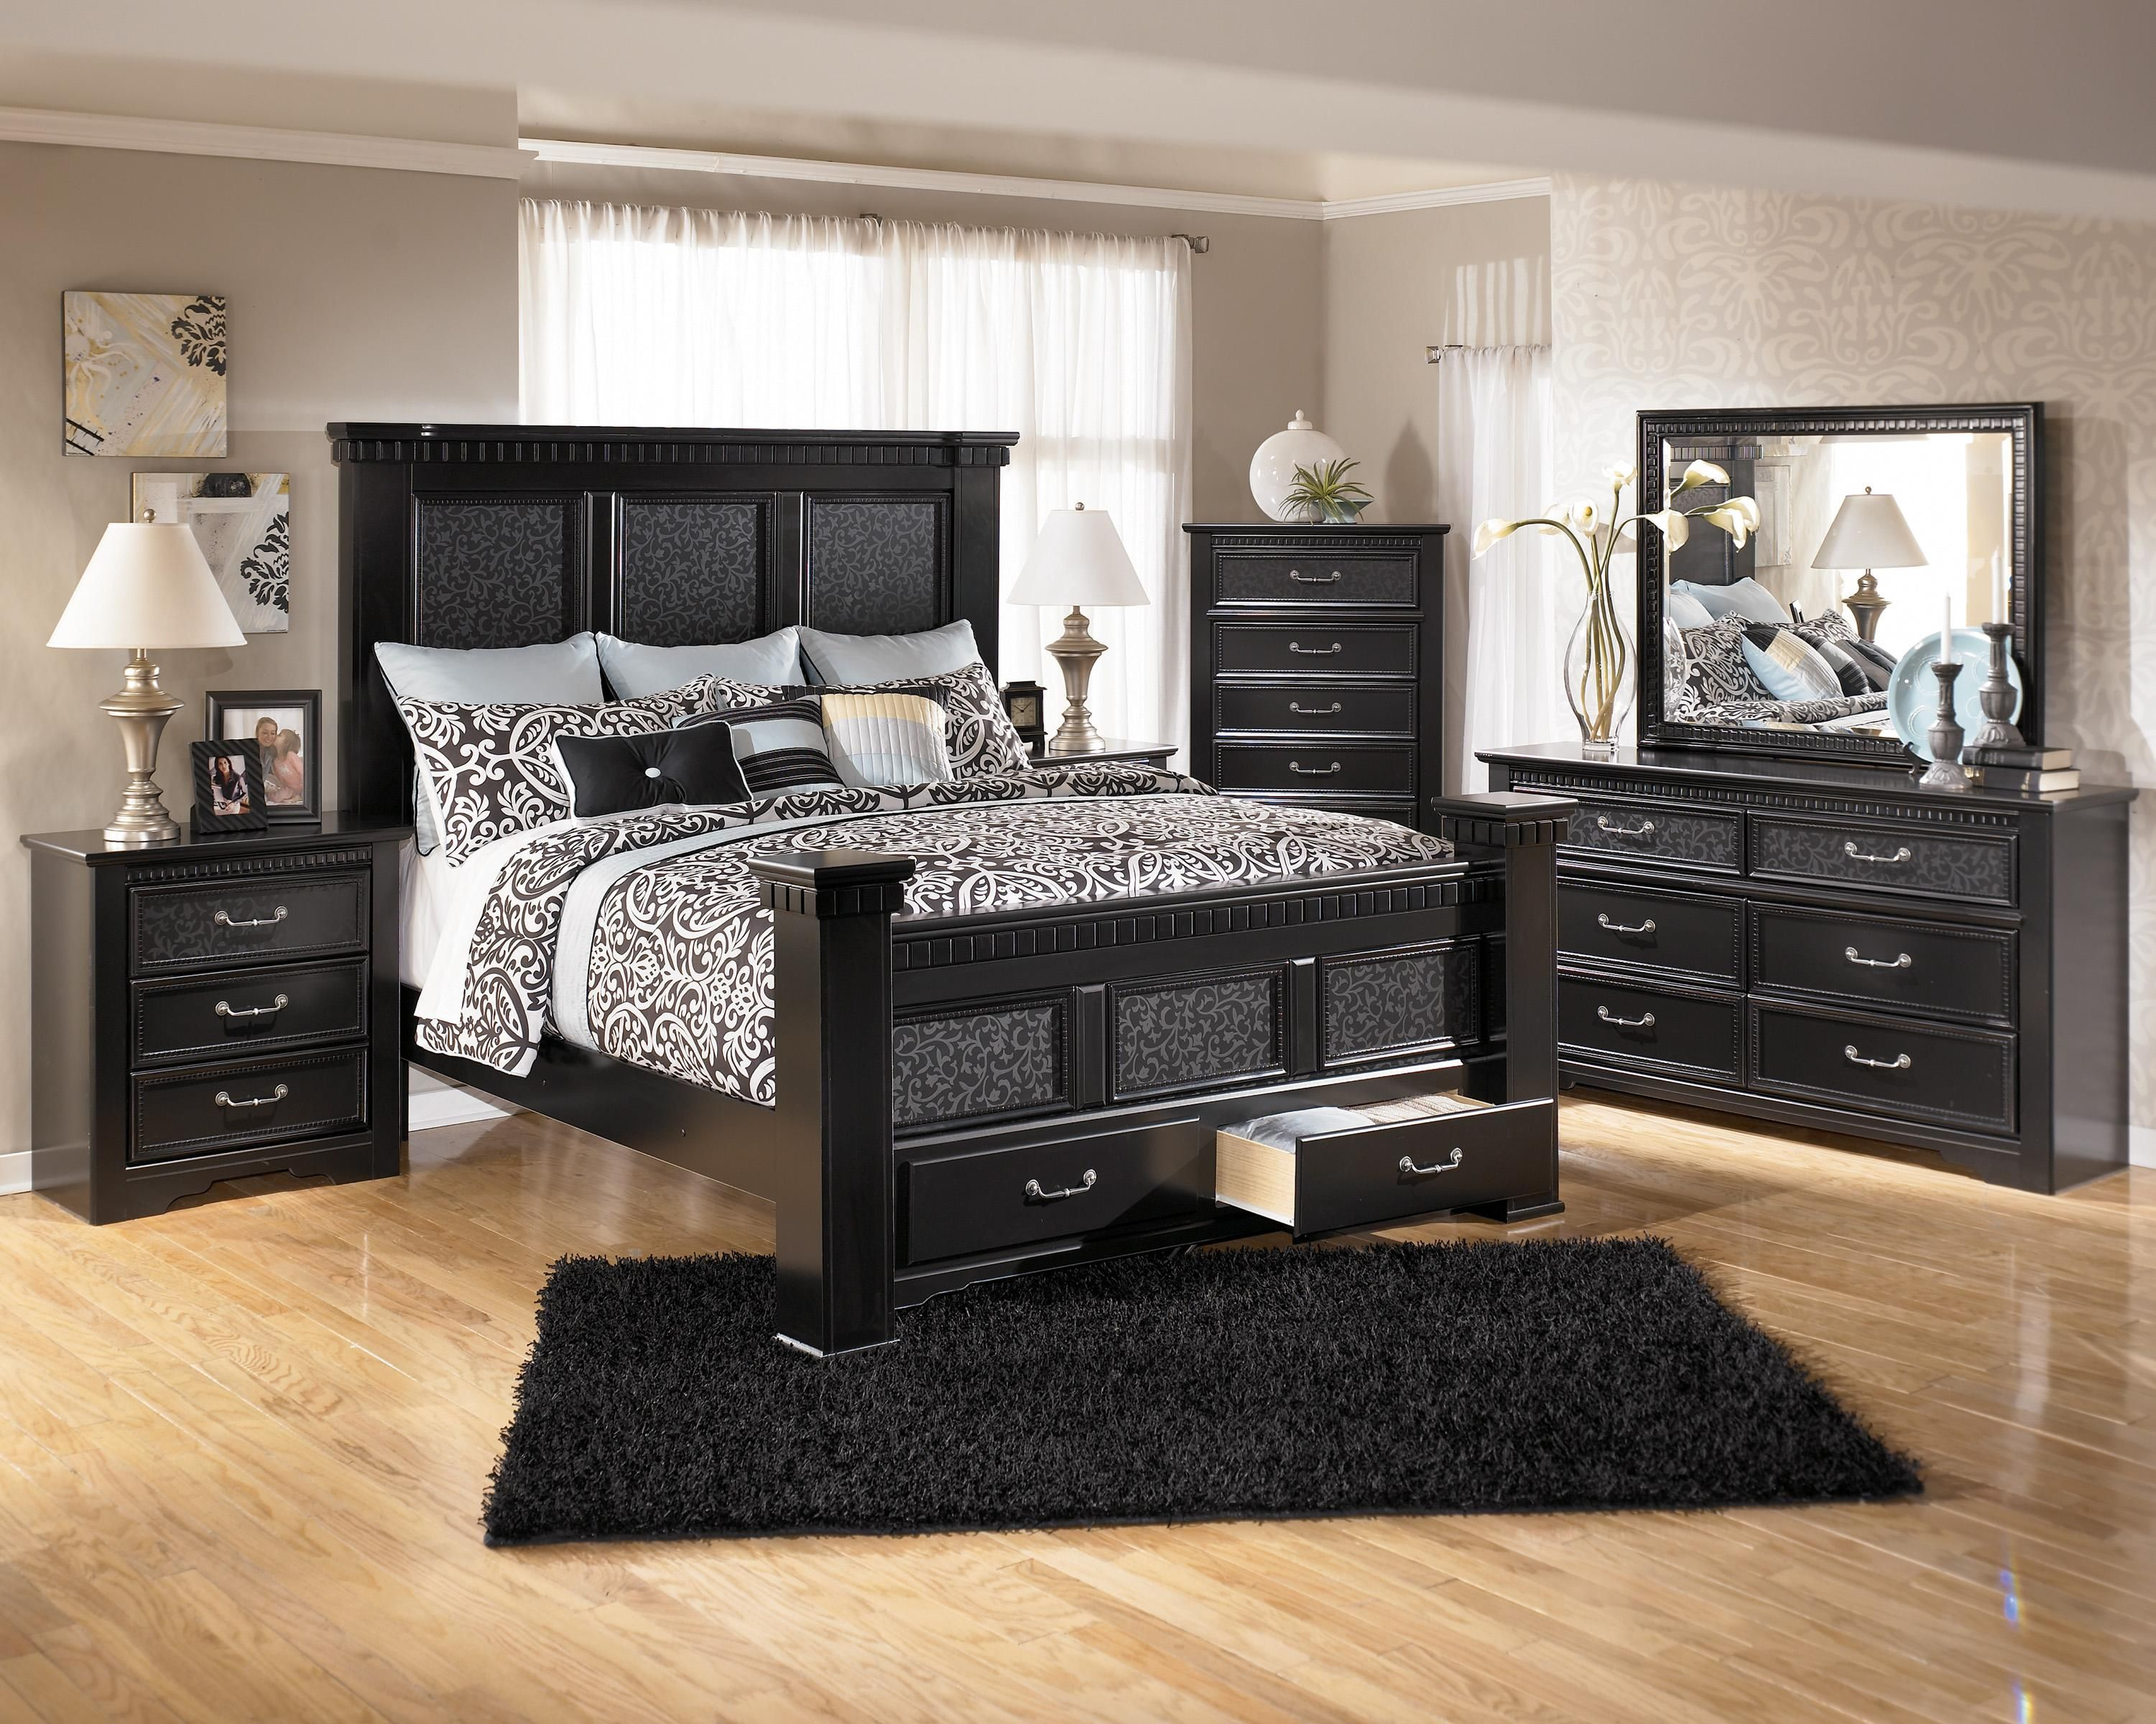 Image of: Ashley Furniture Bed With Storage Pictures